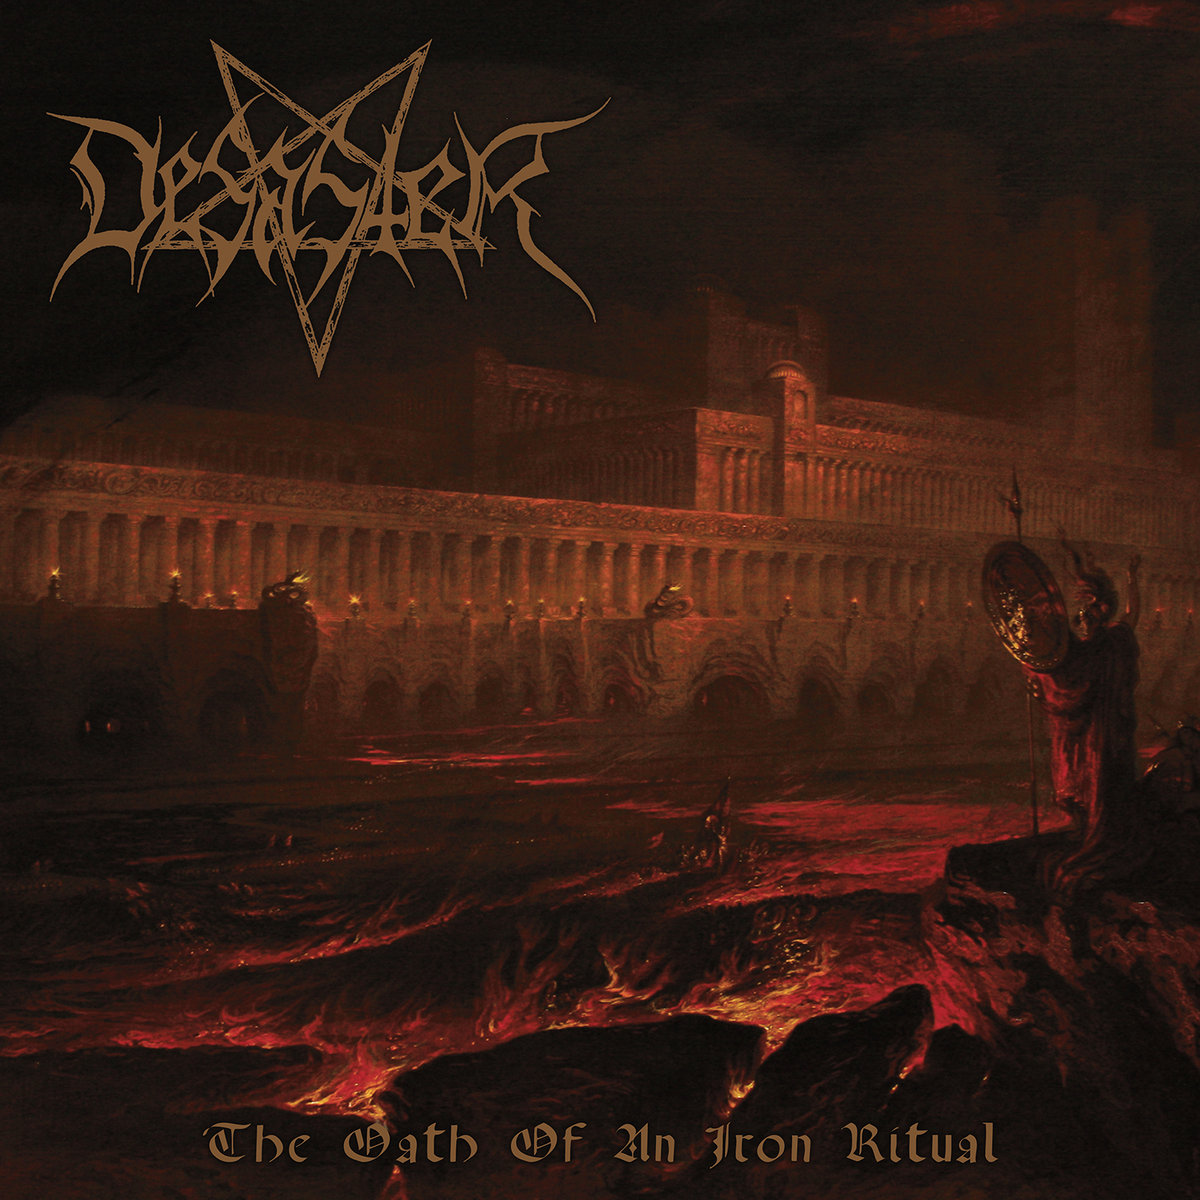 Desaster - The Oath of an Iron Ritual (2016) - Black/Thrash